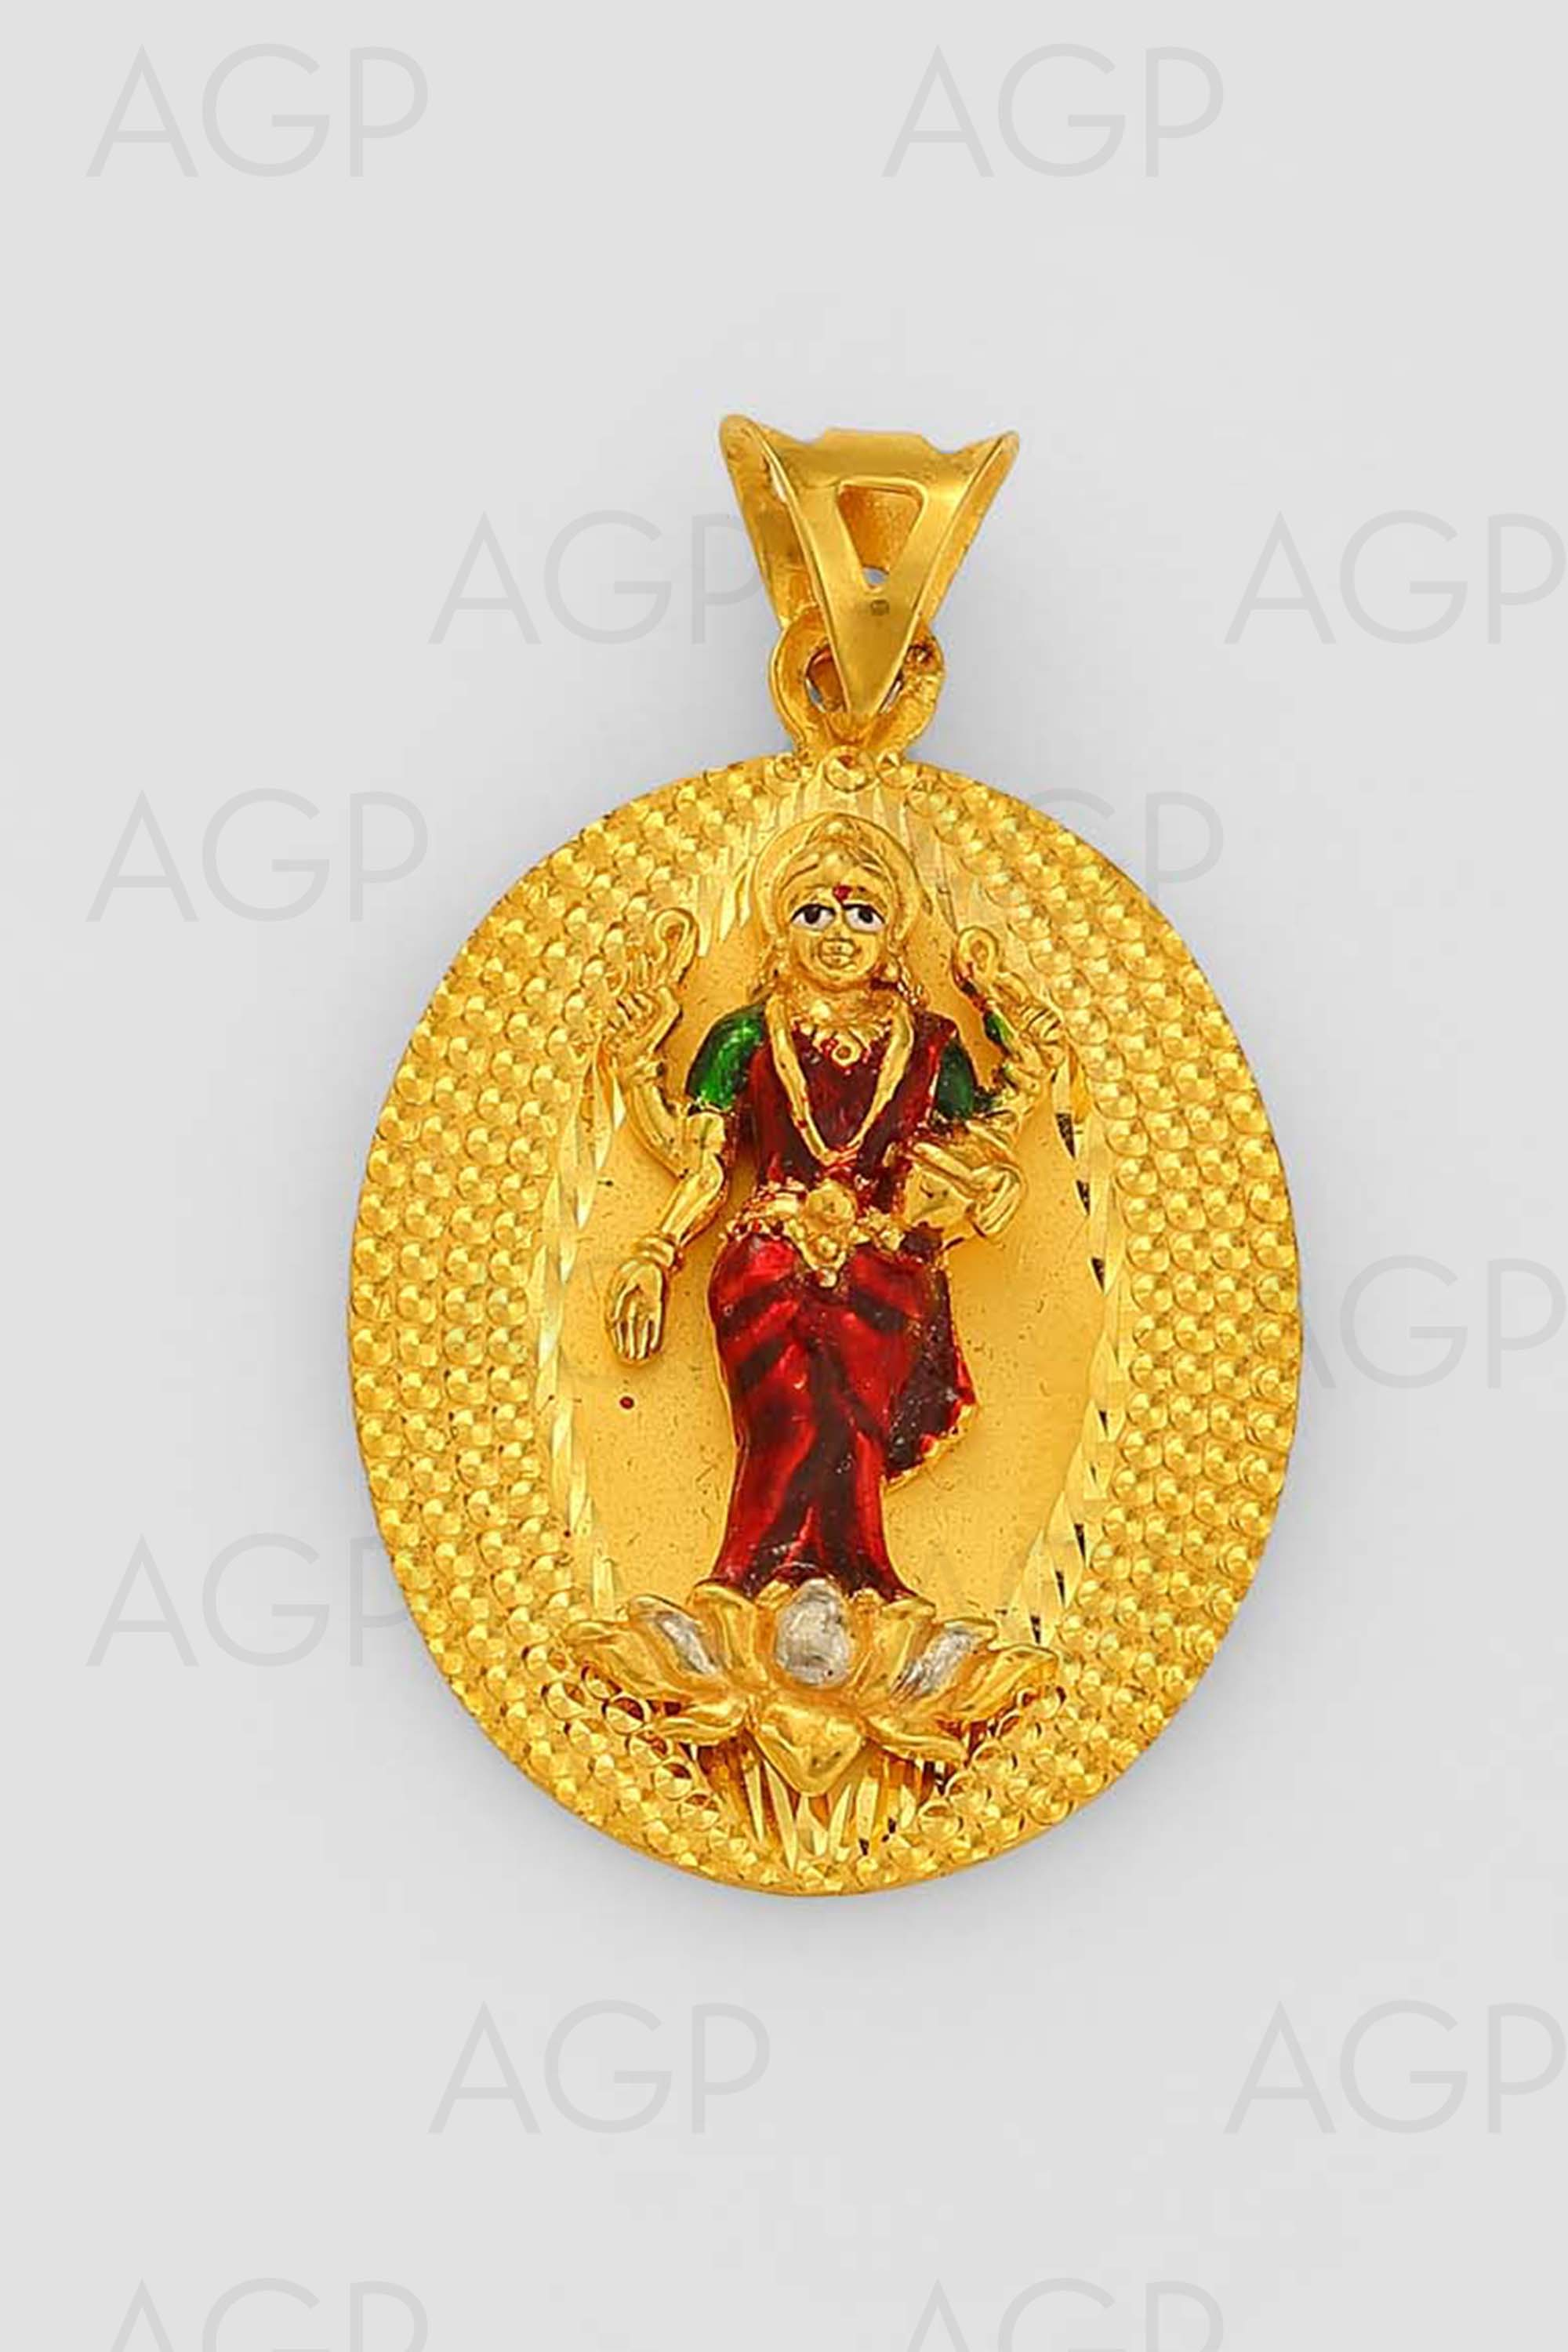 Pai jewellers gold necklace designs latest indian jewellery designs - Locket 61